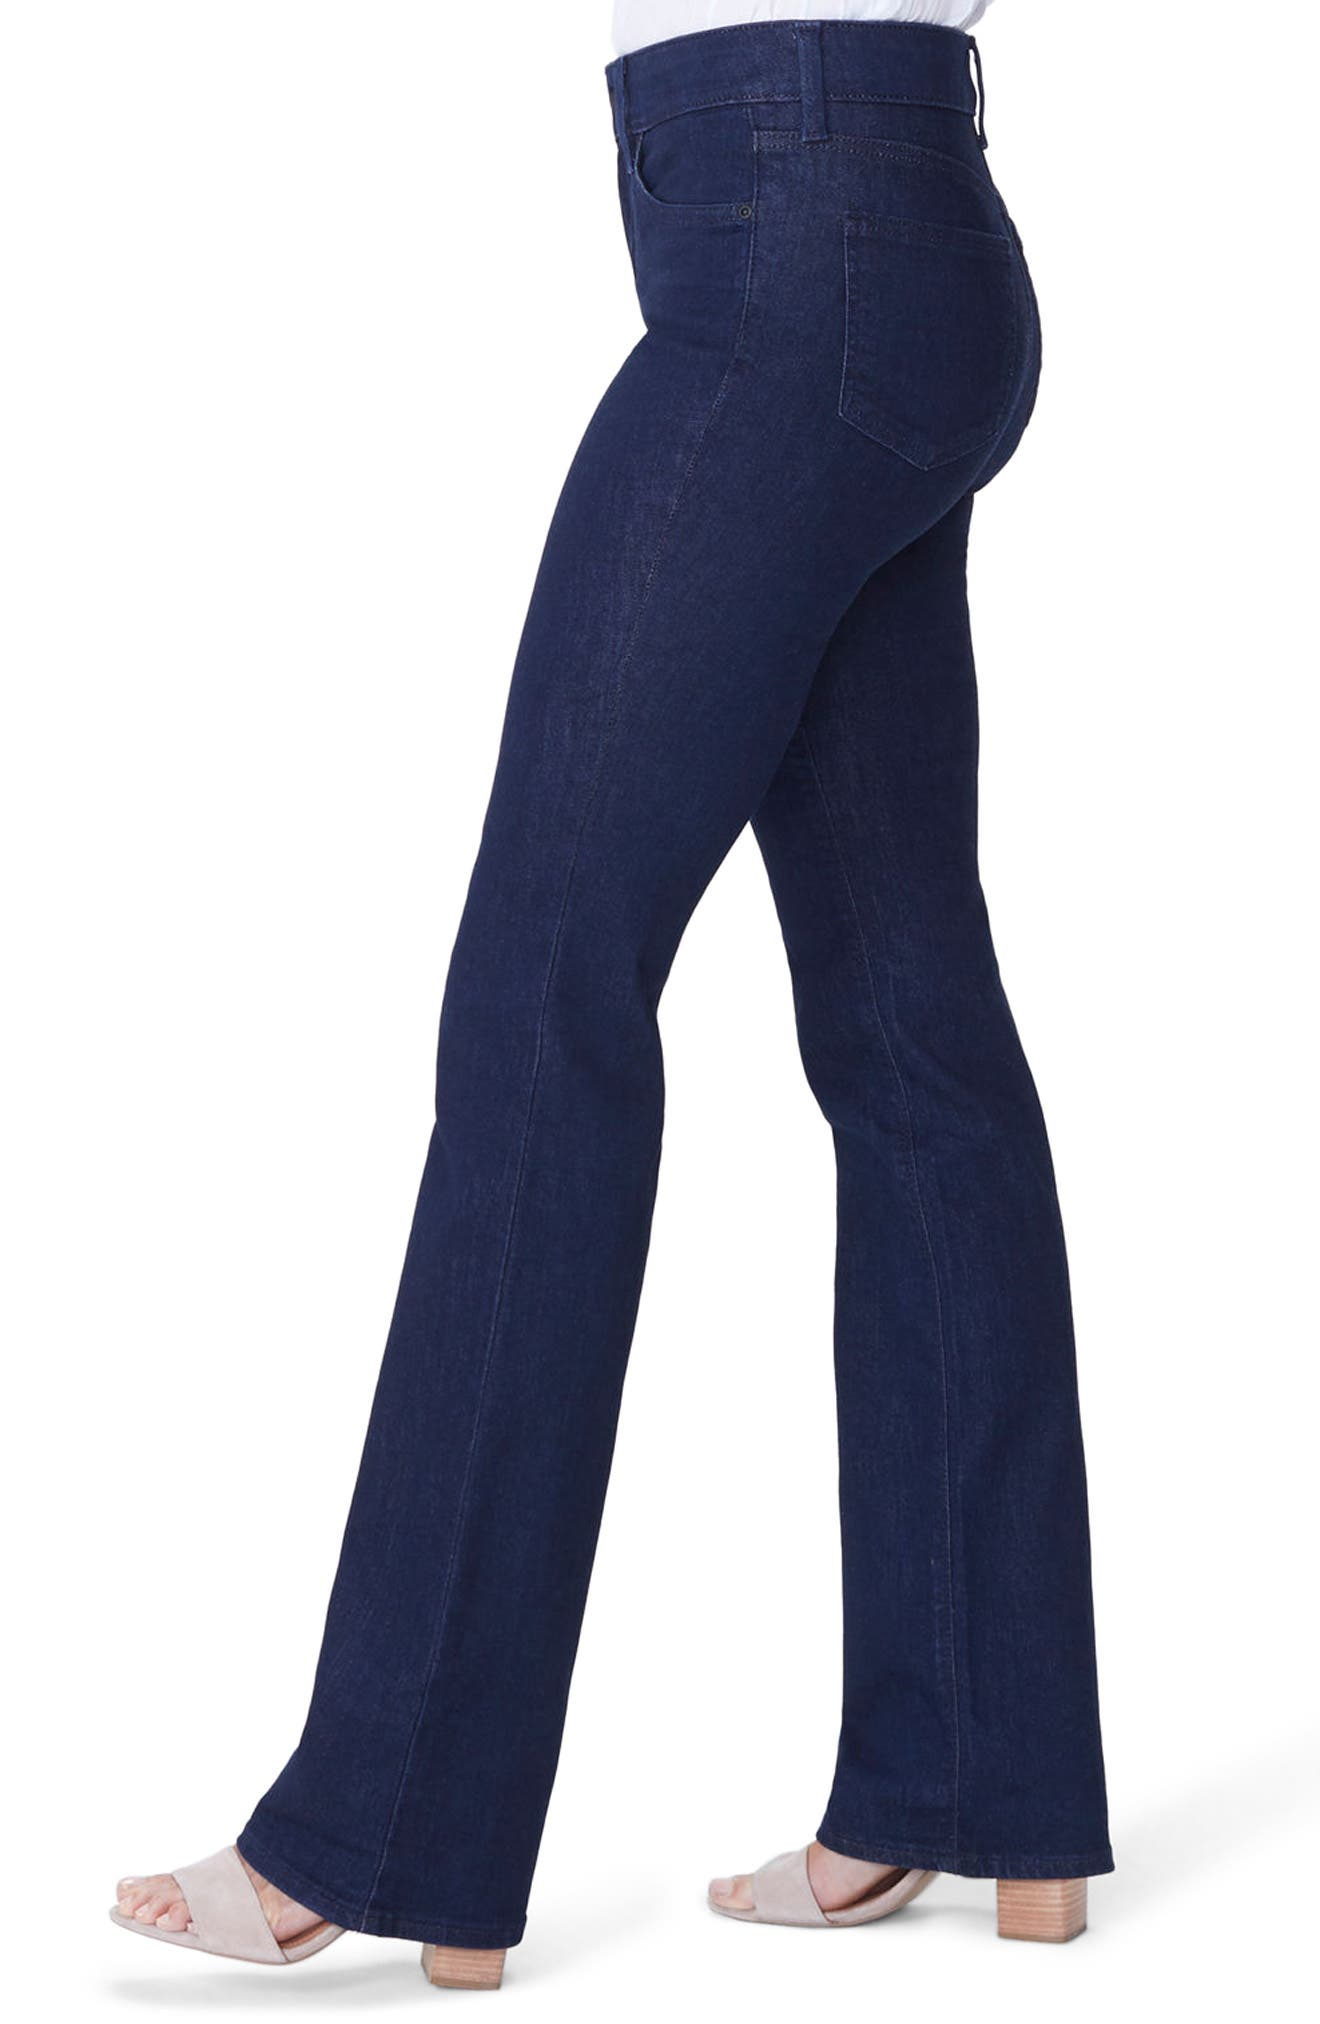 Barbara High Waist Stretch Bootcut Jeans,                             Alternate thumbnail 3, color,                             RINSE